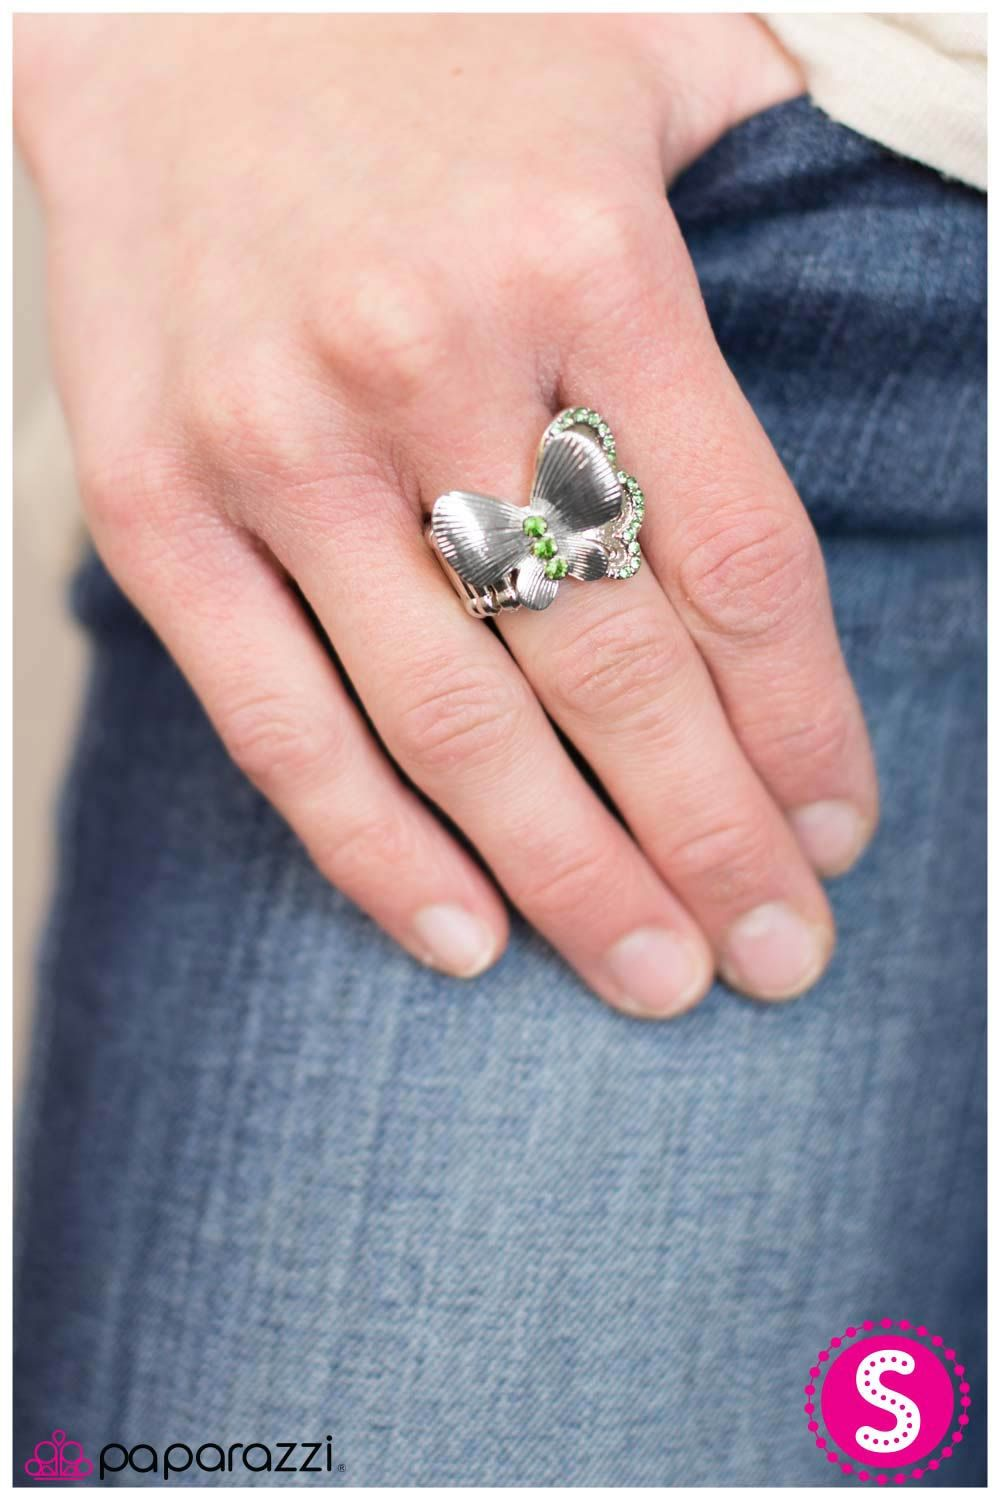 You Give Me Butterflies- Stretch band ring. All Lead and Nickel Free ...